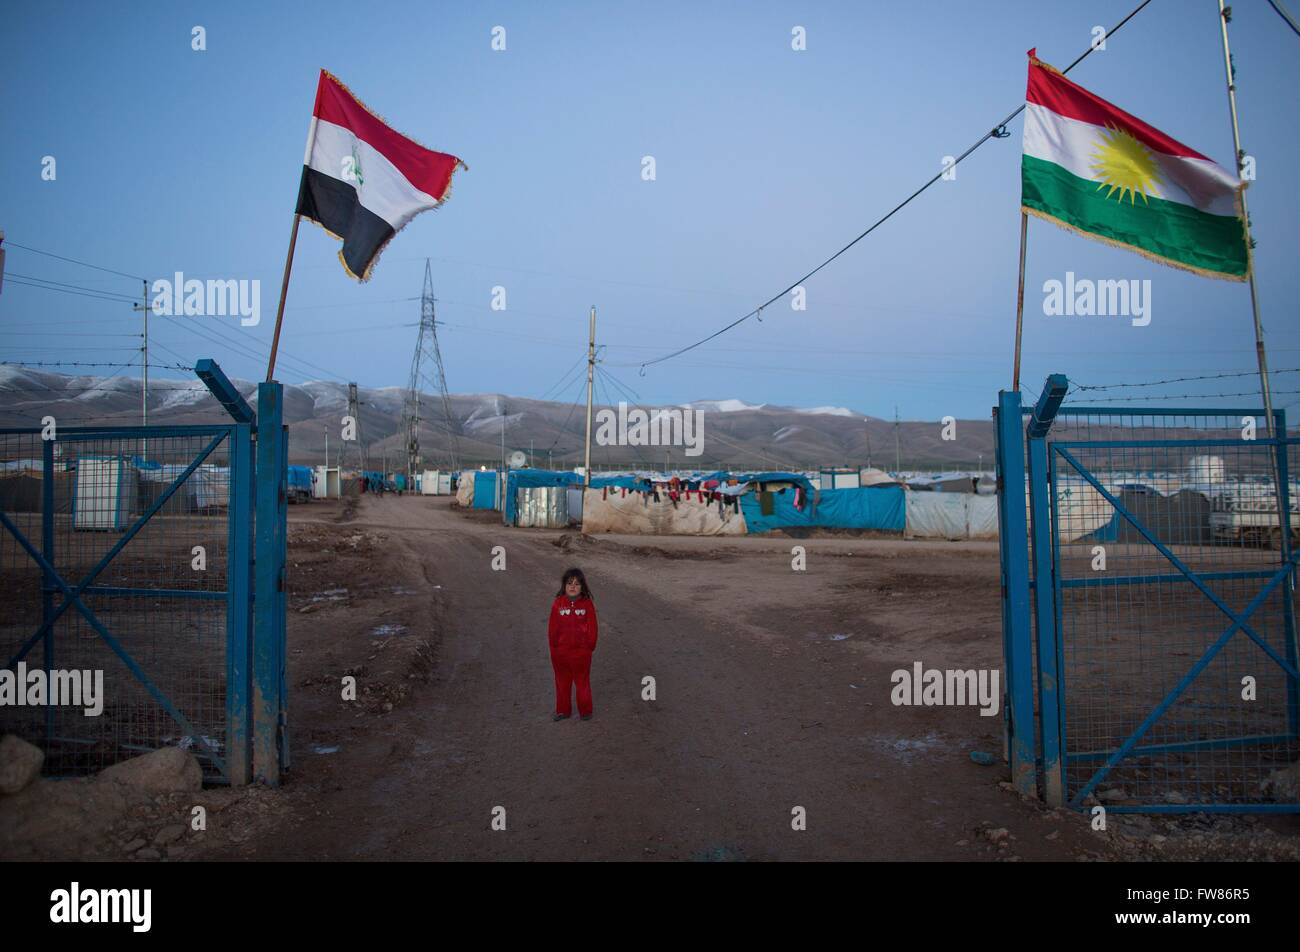 Displaced people in a refugee camp in Northern Iraq - Stock Image